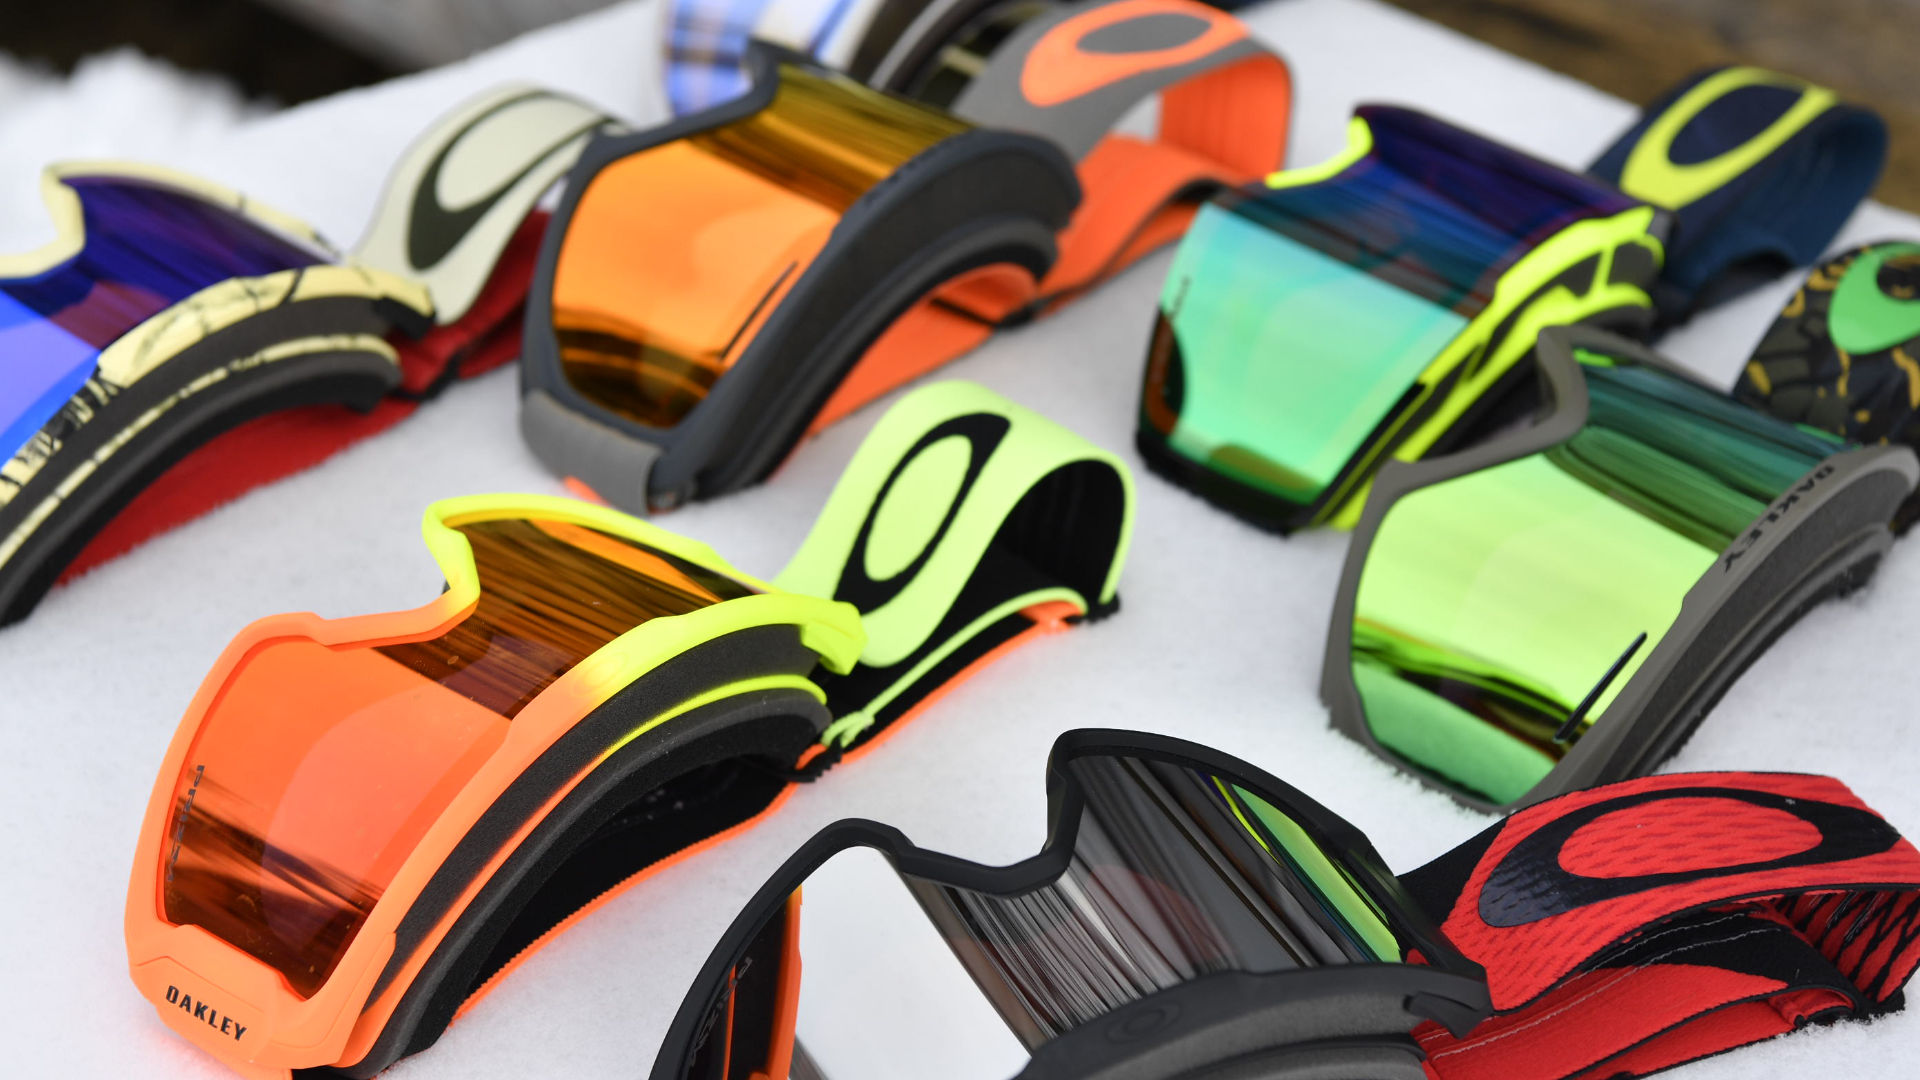 Different goggles from Oakley with Prizm lenses